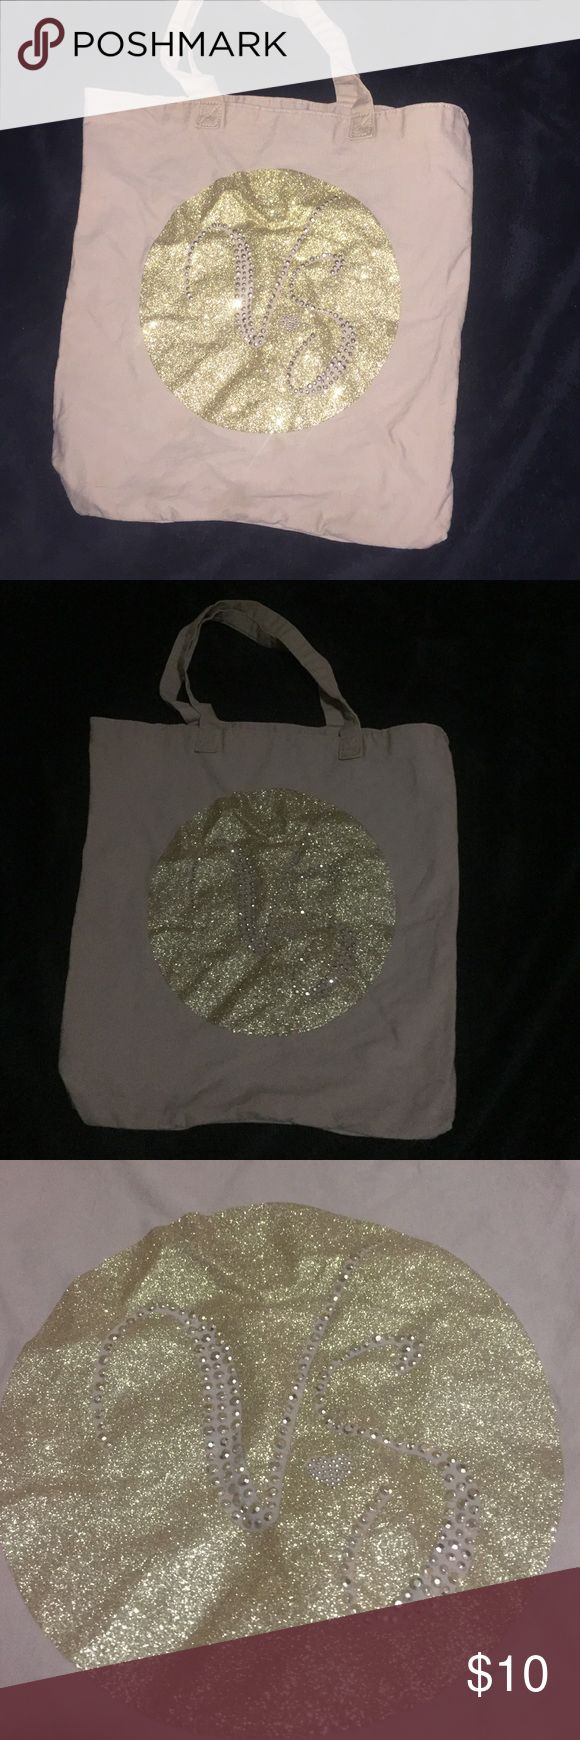 NAME YOUR PRICE! Victoria's Secret glitter tote Has glitter circle that has rhinestones spelling VS. tan and gold tote bag Victoria's Secret Bags Totes